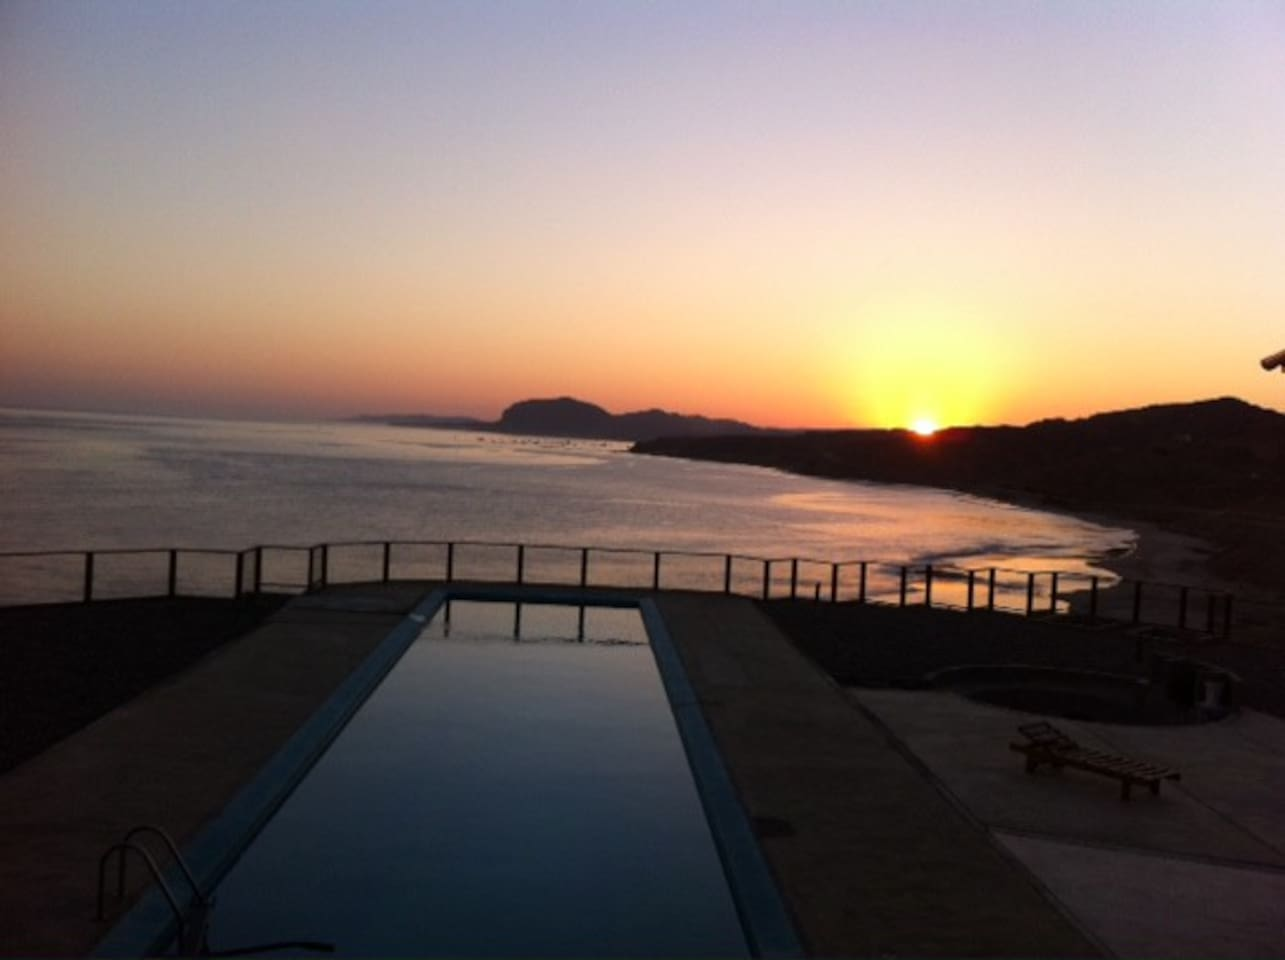 A beautiful sunrise from our terraza.